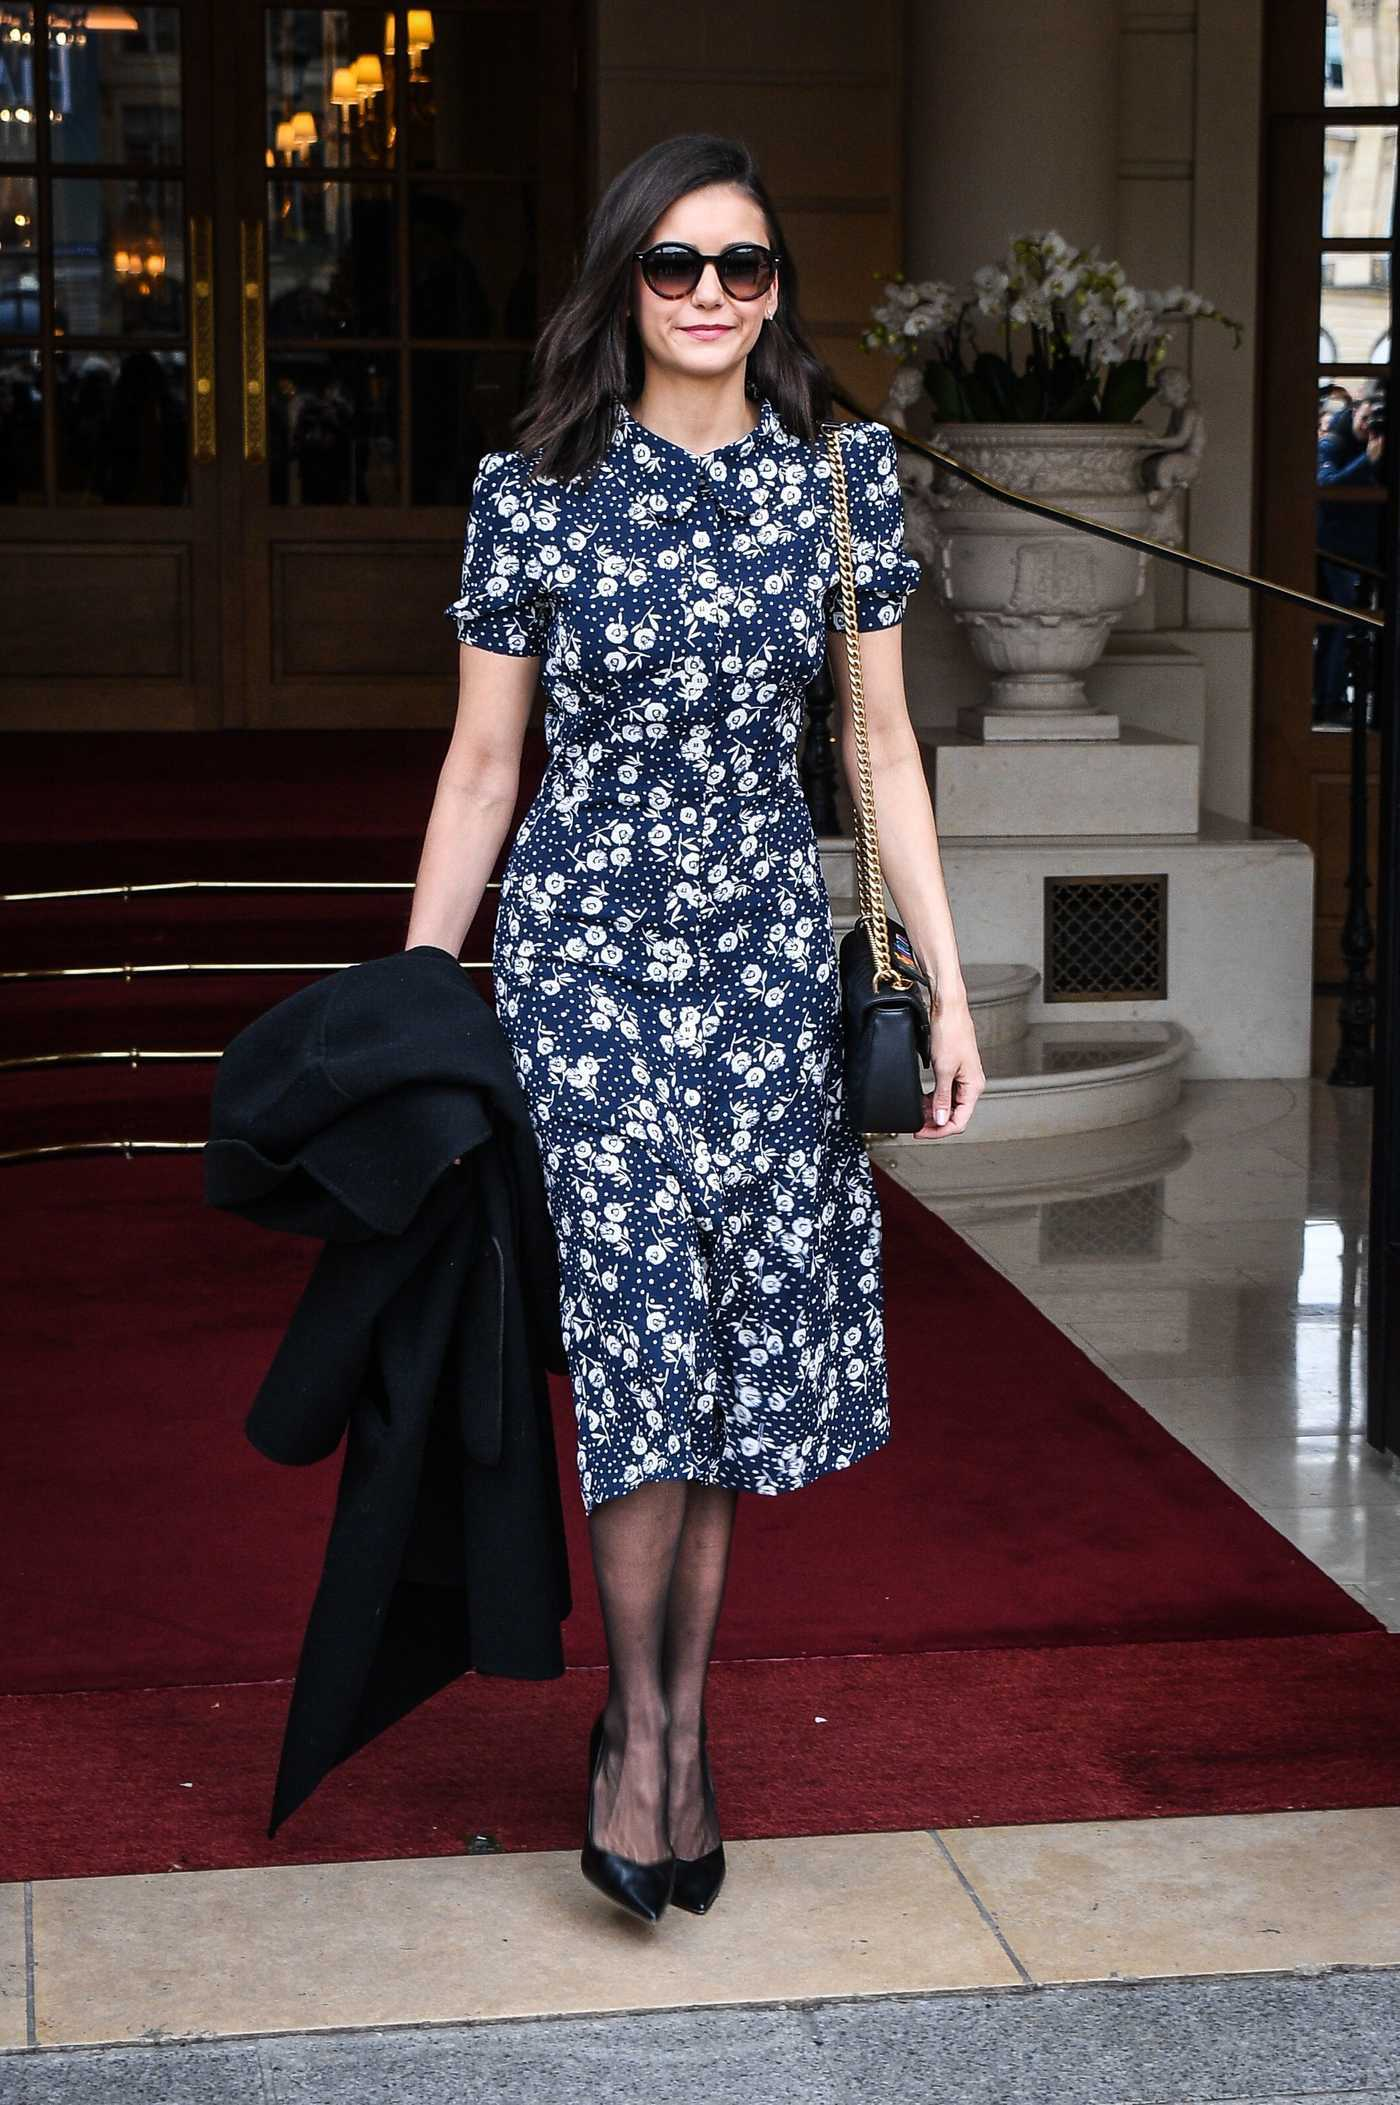 Nina Dobrev in a Floral Dress Was Seen Out in Paris 03/03/2019